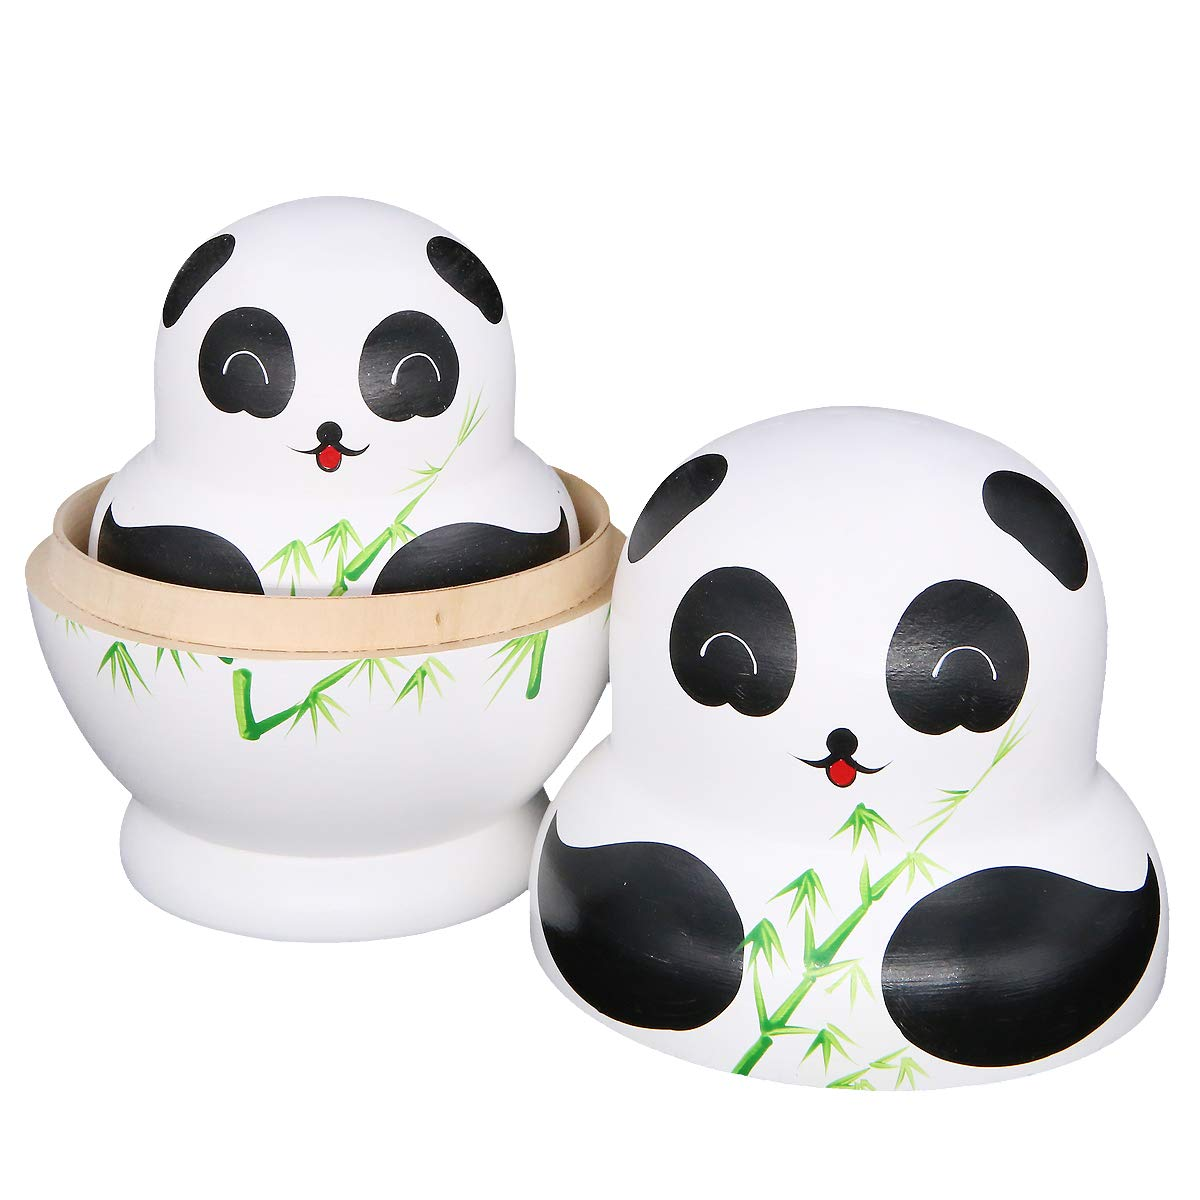 Apol Set of 15 Panda Bear with Bamboo Nesting Dolls Big-Belly Wooden Handmade Matryoshka Russian Doll in a Box with Bow for Kids Toy Home Decoration Year by Apol (Image #5)